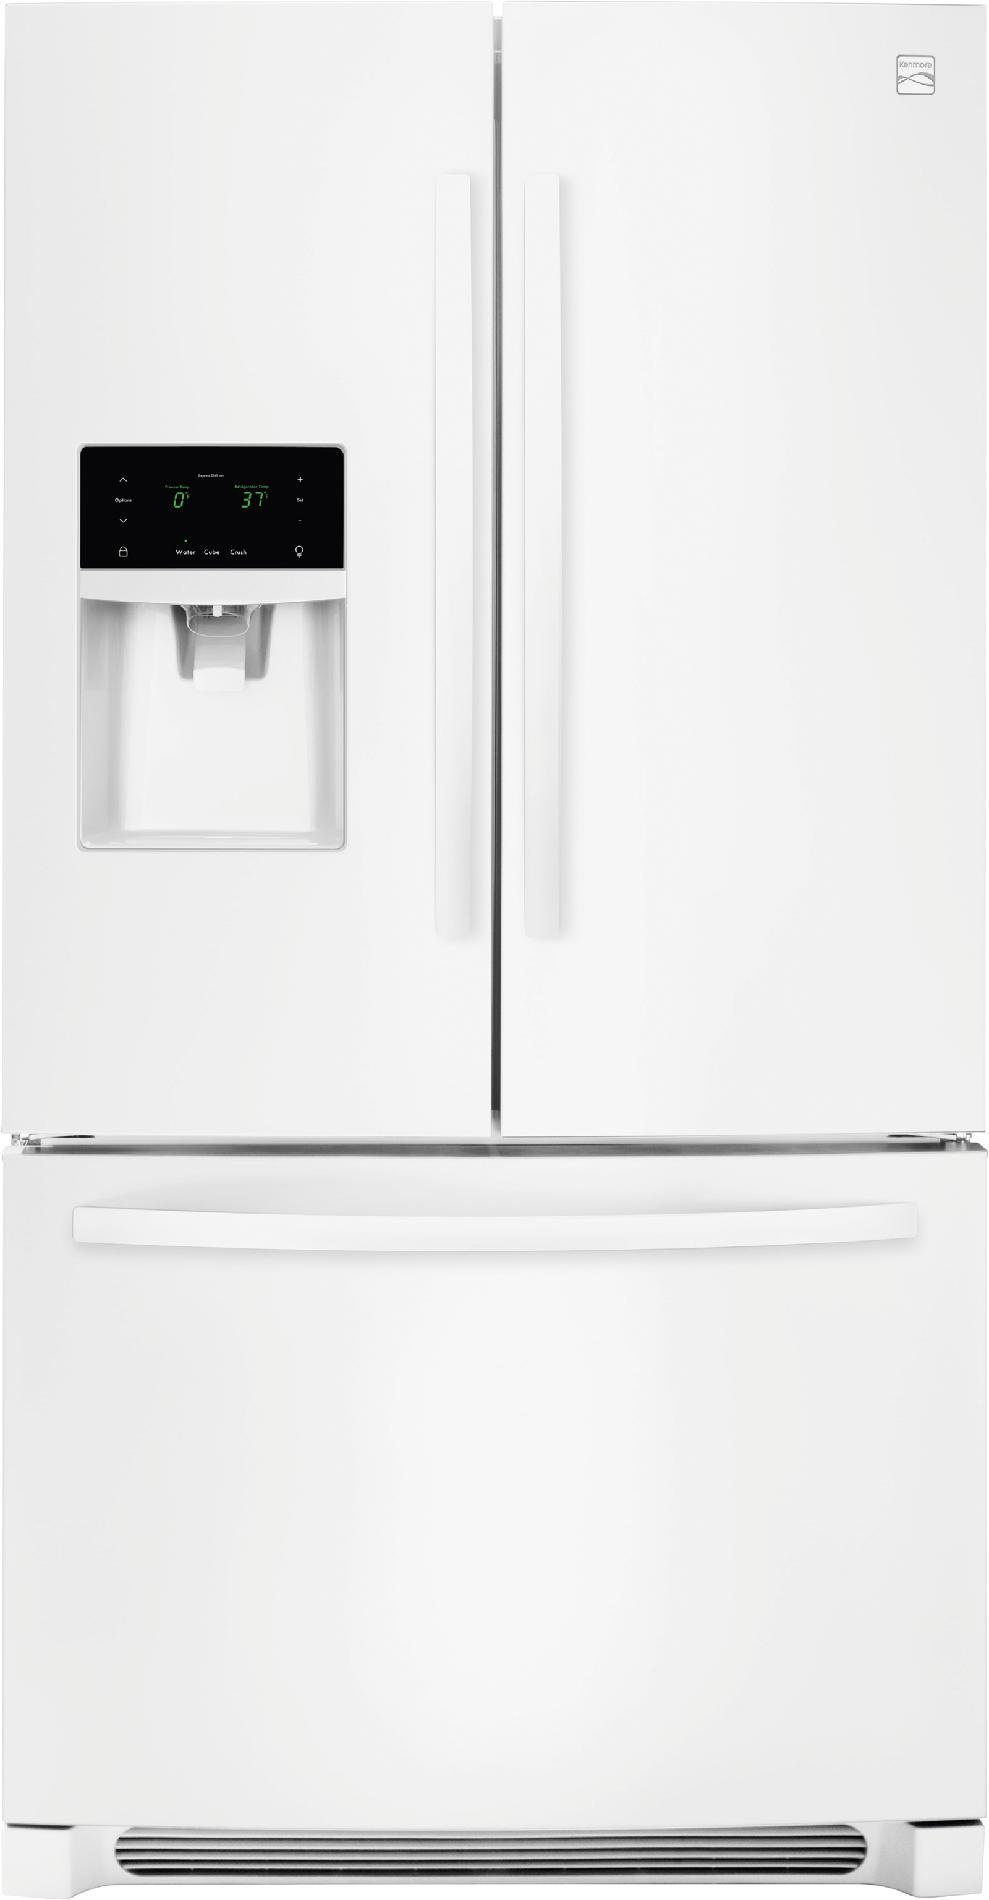 70342-27-2-cu-ft-French-Door-Refrigerator-White